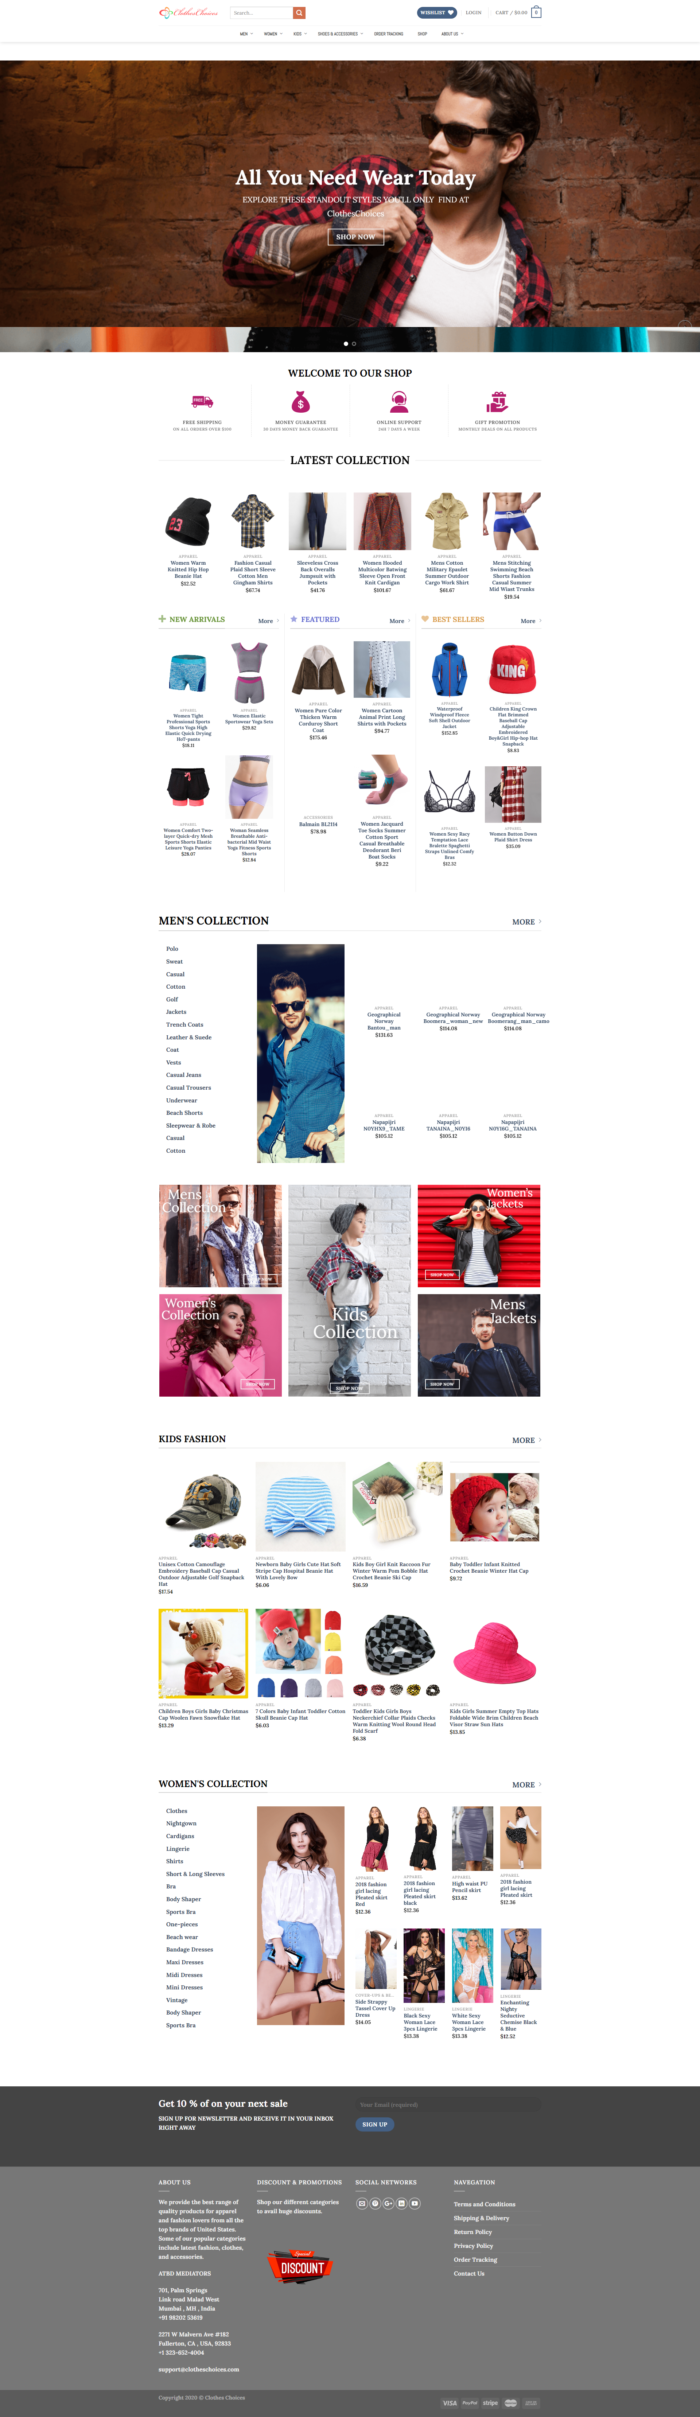 ClothesChoices – Latest Clothing Collection